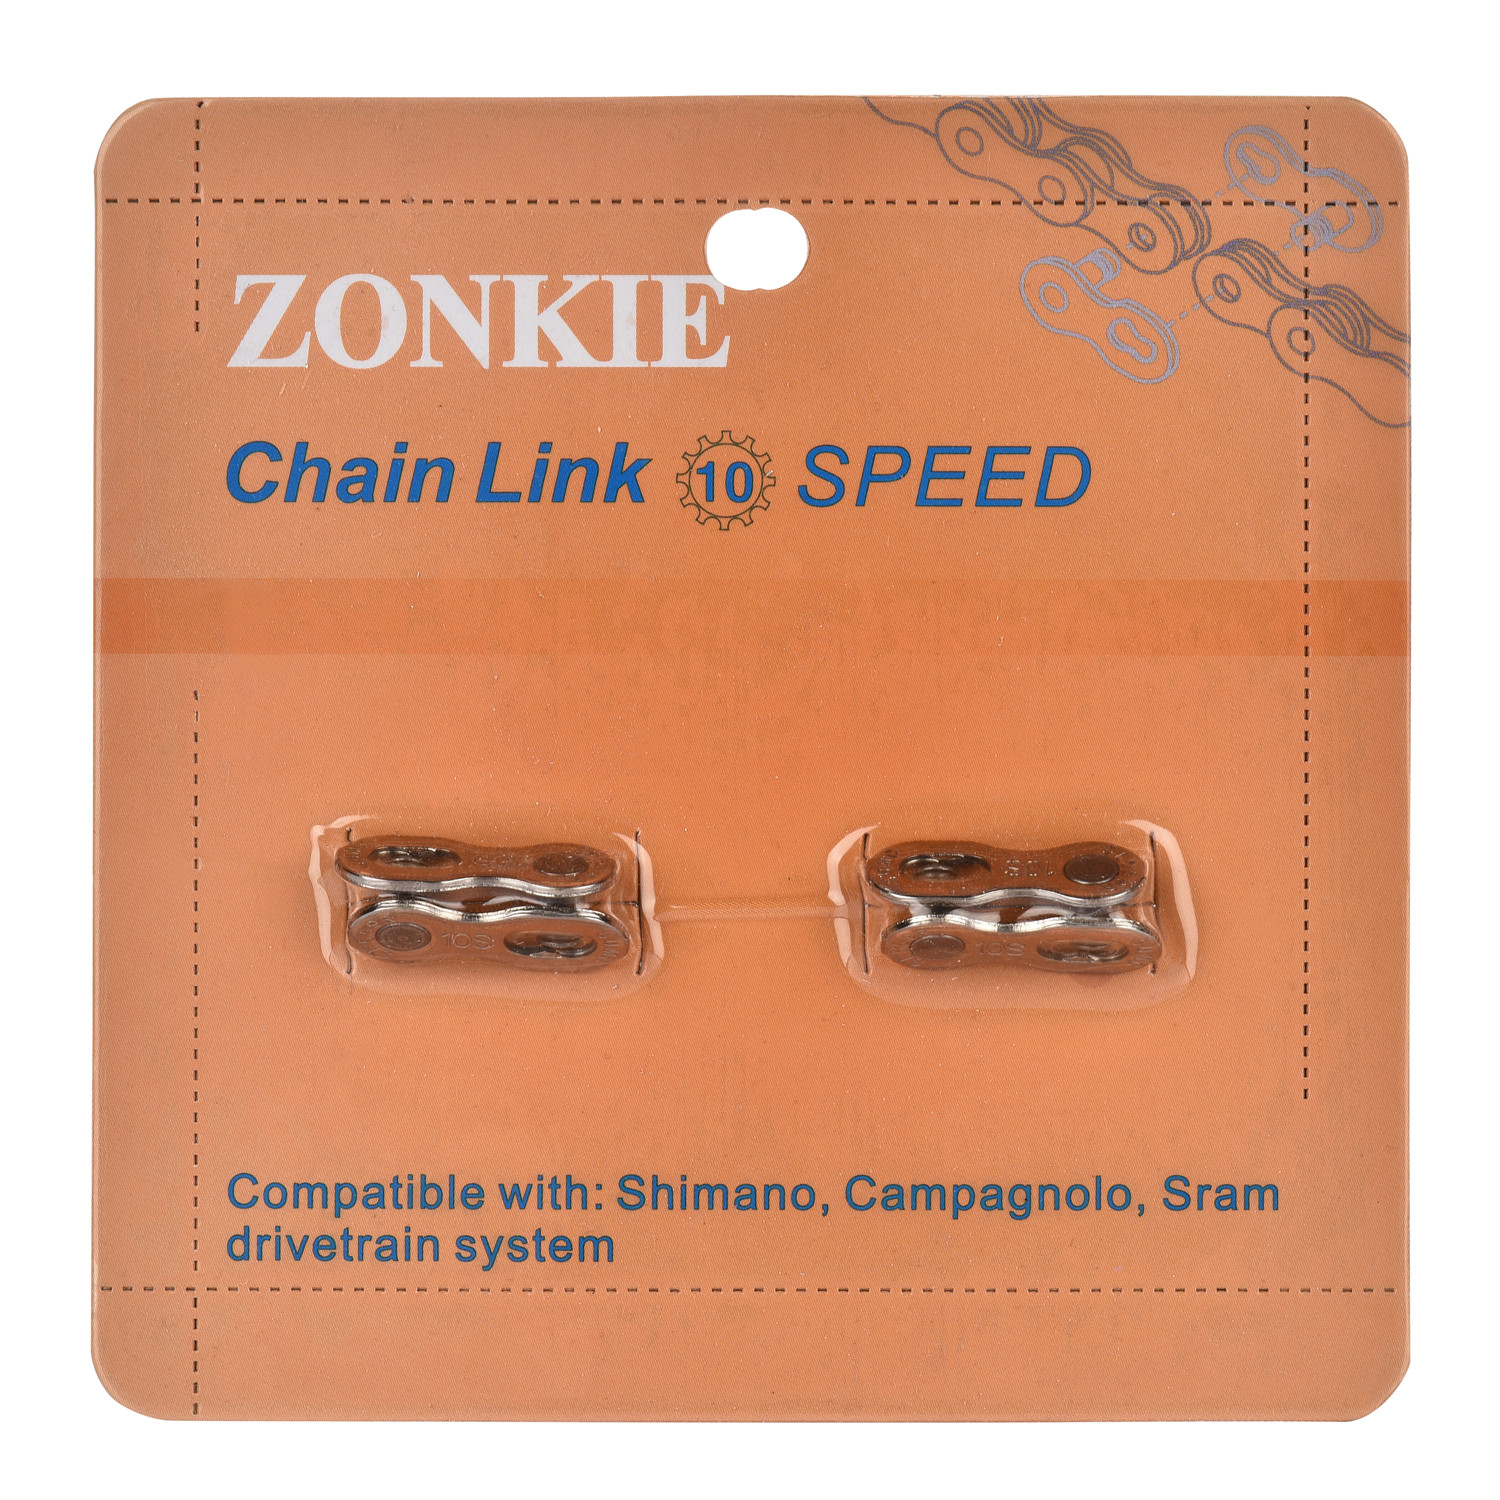 10 speed link's package